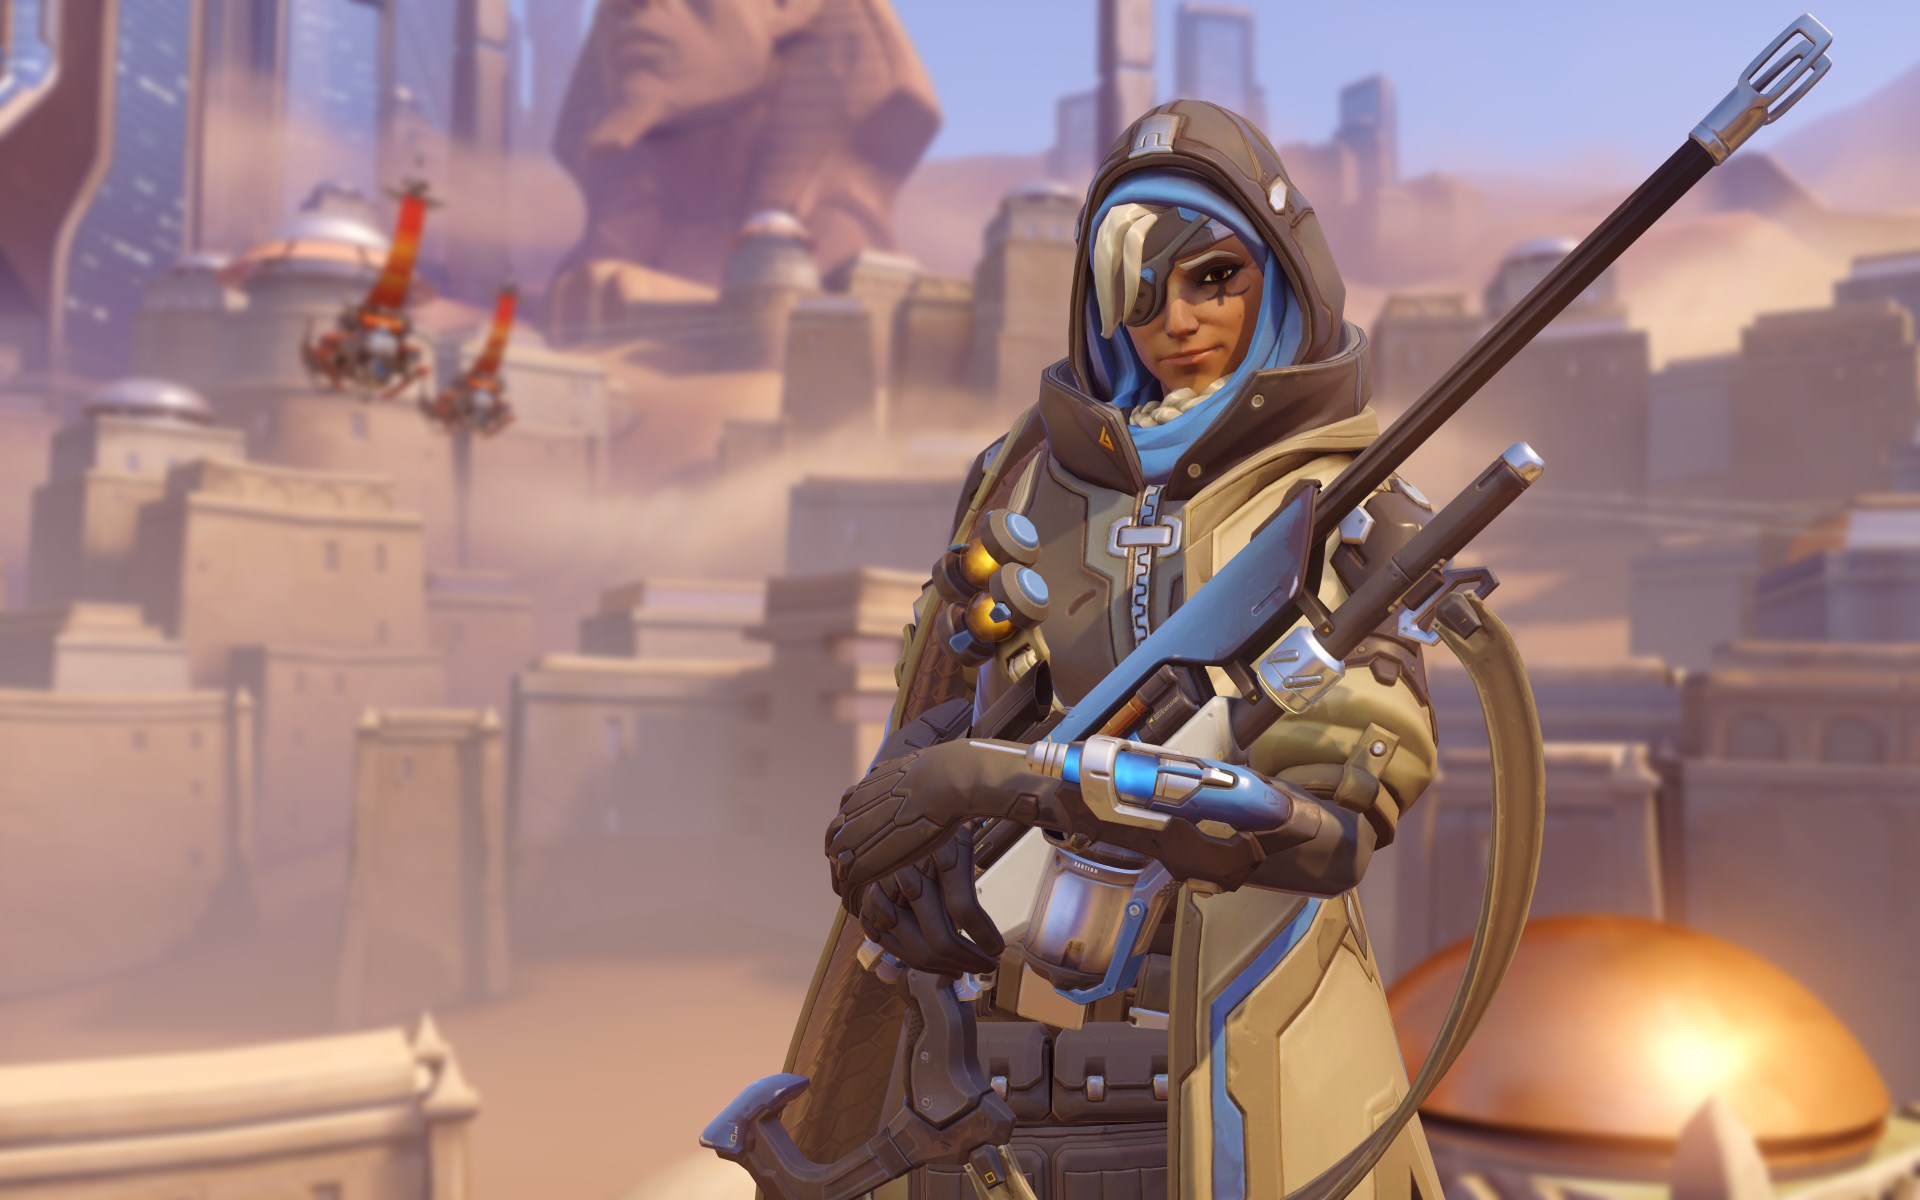 The new Overwatch hero Ana is now live [updated]